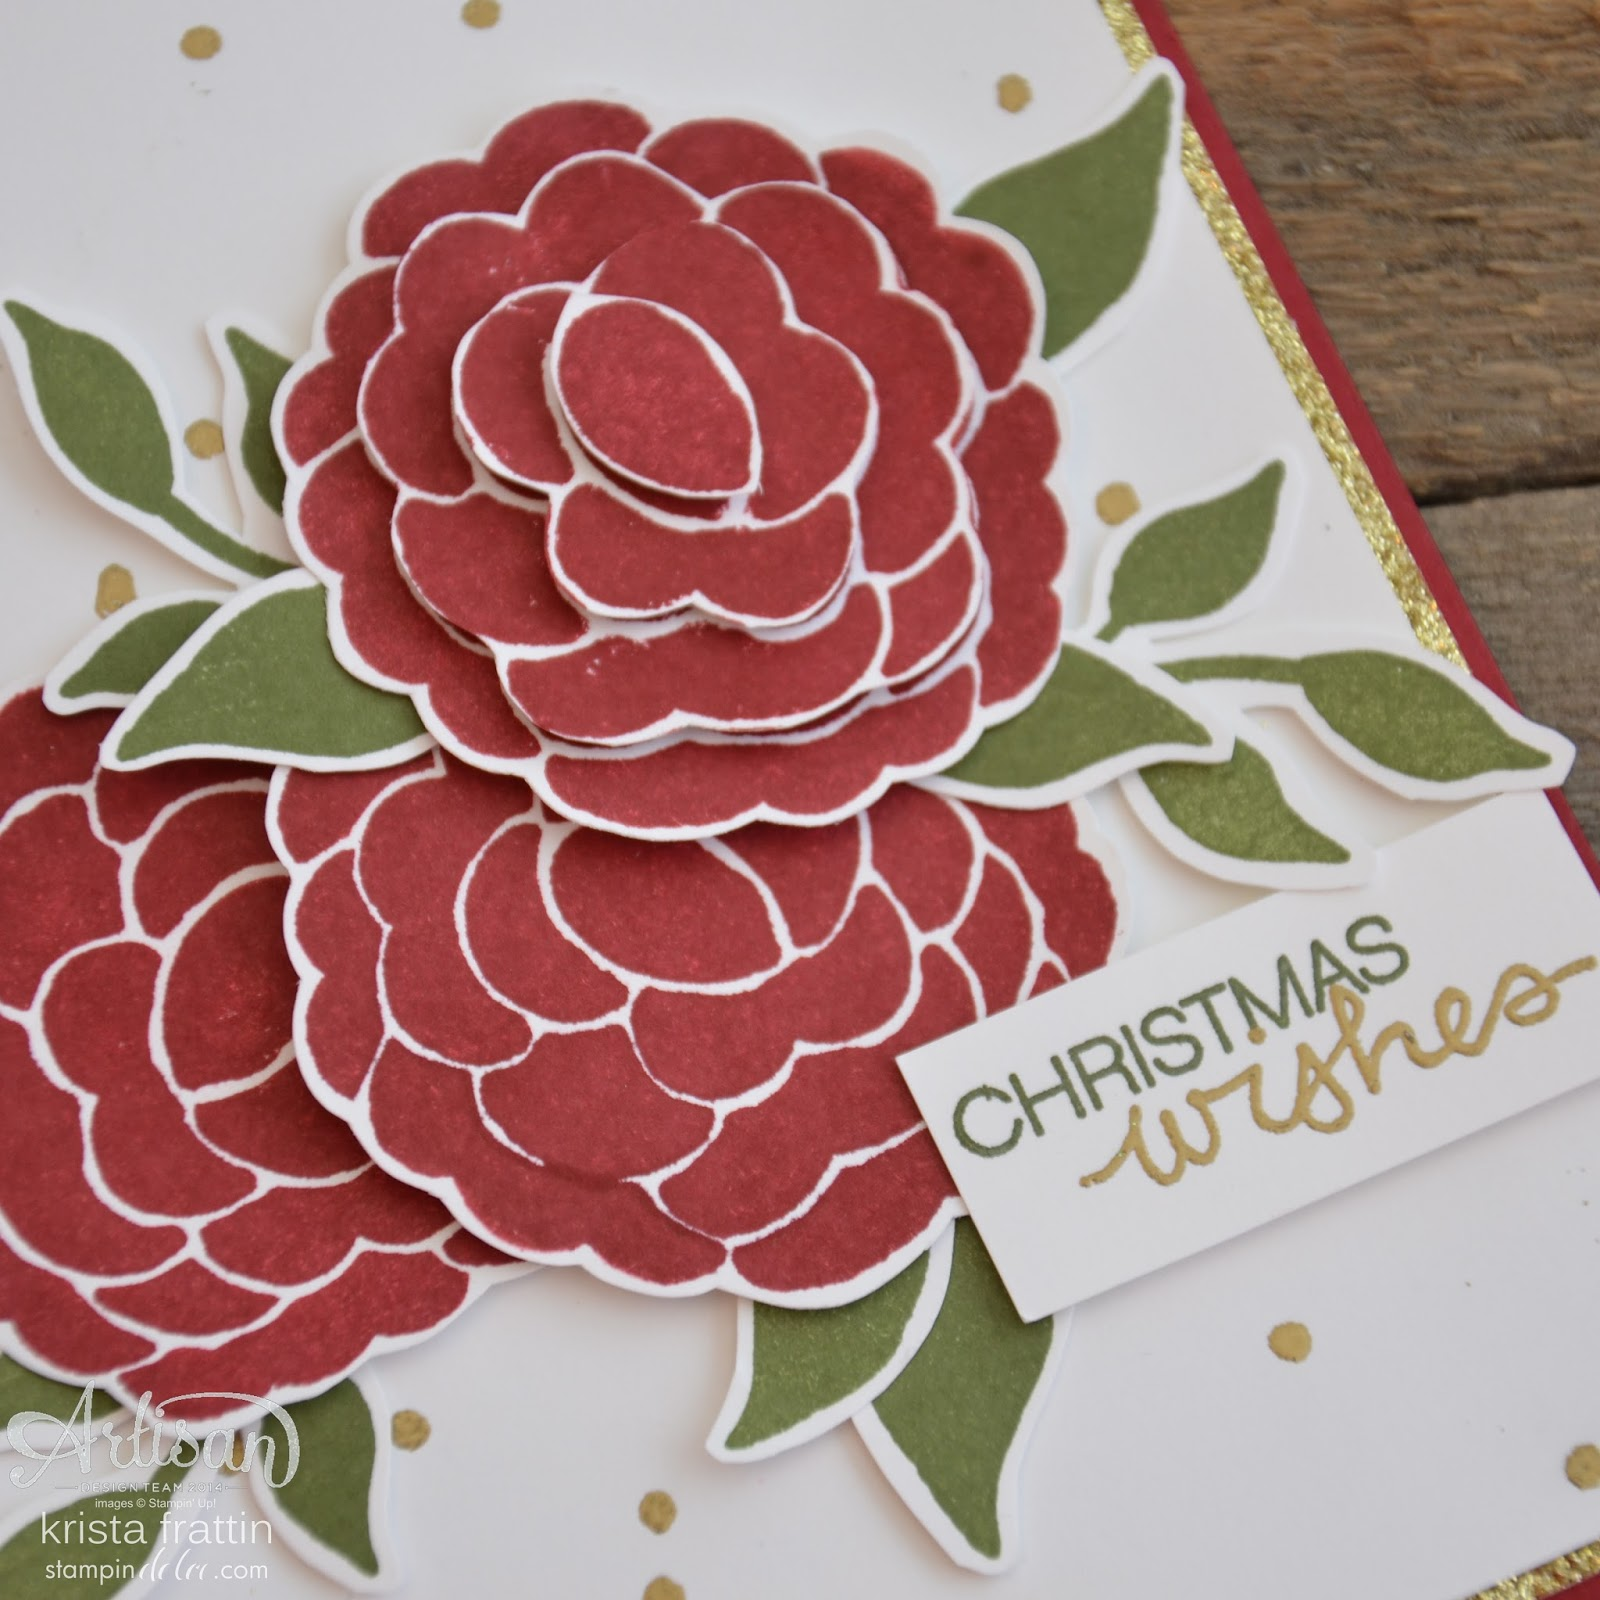 Stampin' Dolce: 12 days of Christmas - DAY 4 - Christmas Carnation ...